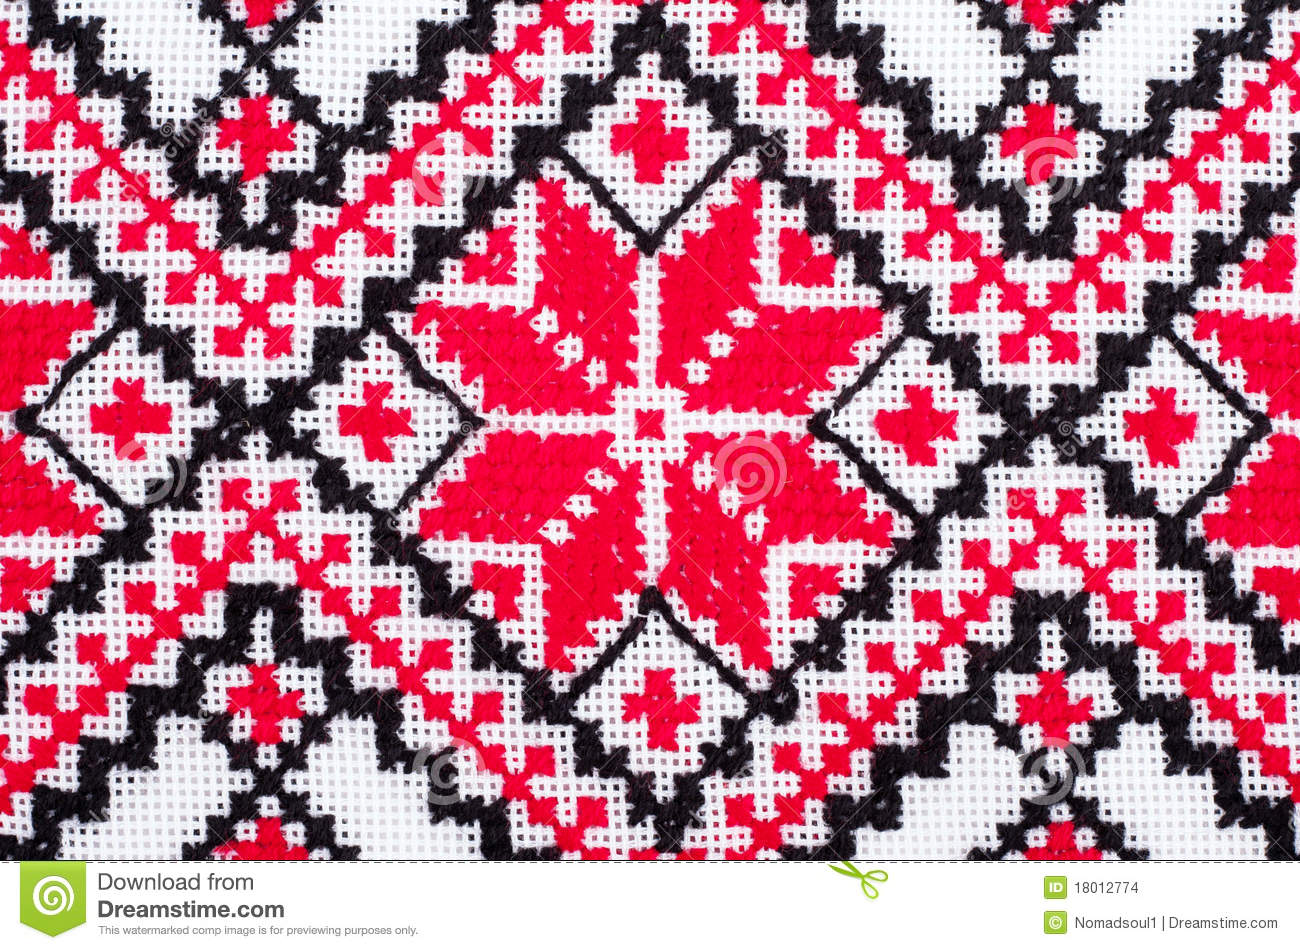 Ukrainian traditional embroidery patterns stock photo